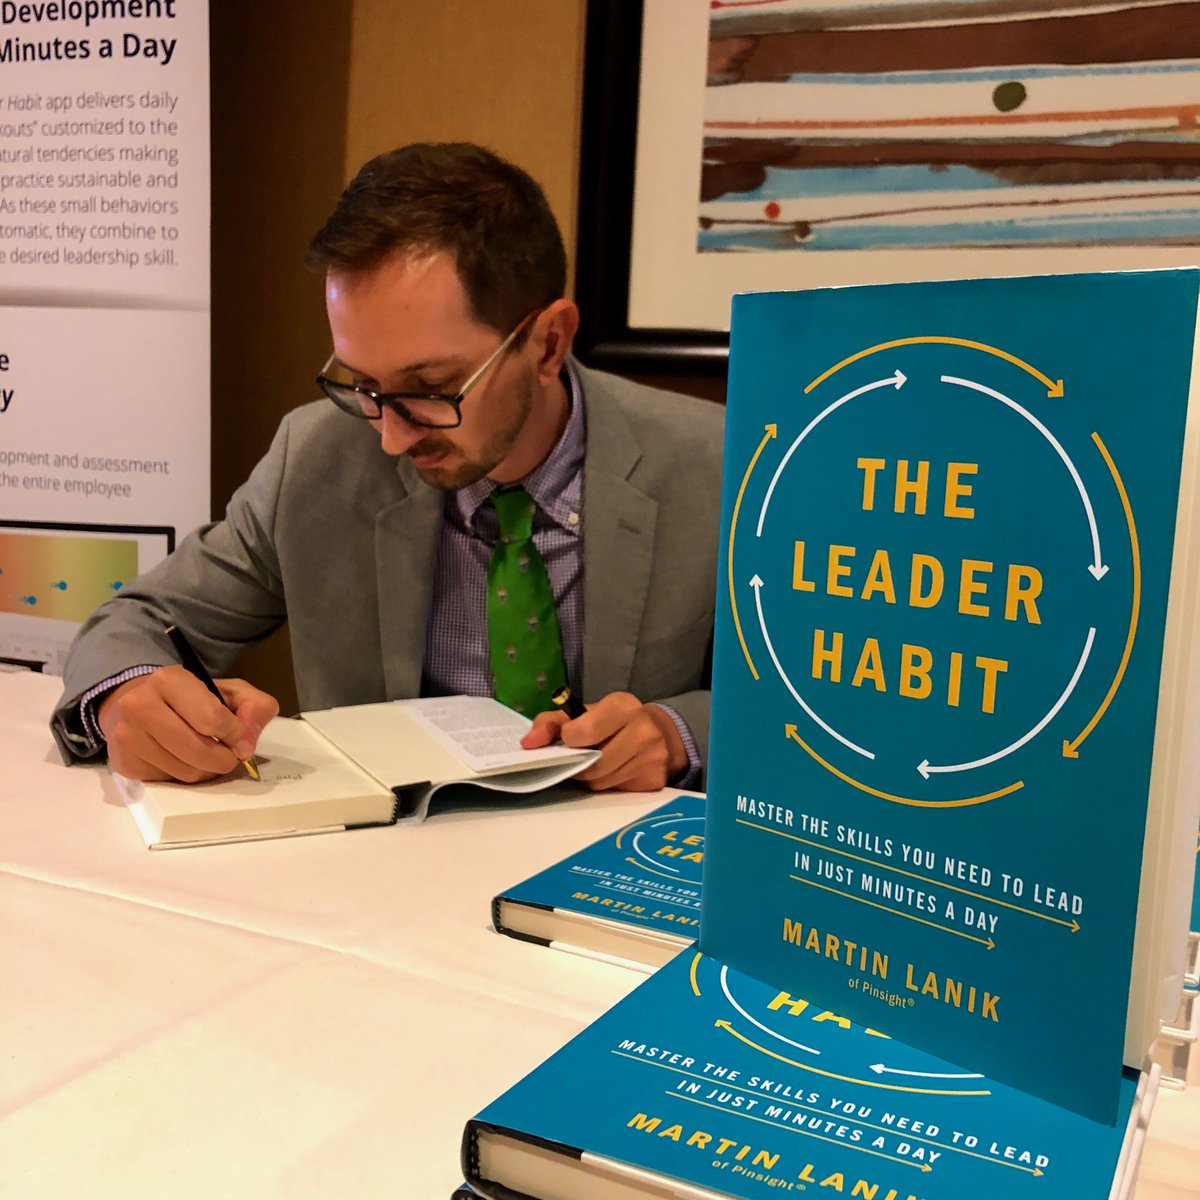 the leader habit master the skills you need to leadin just minutes a day